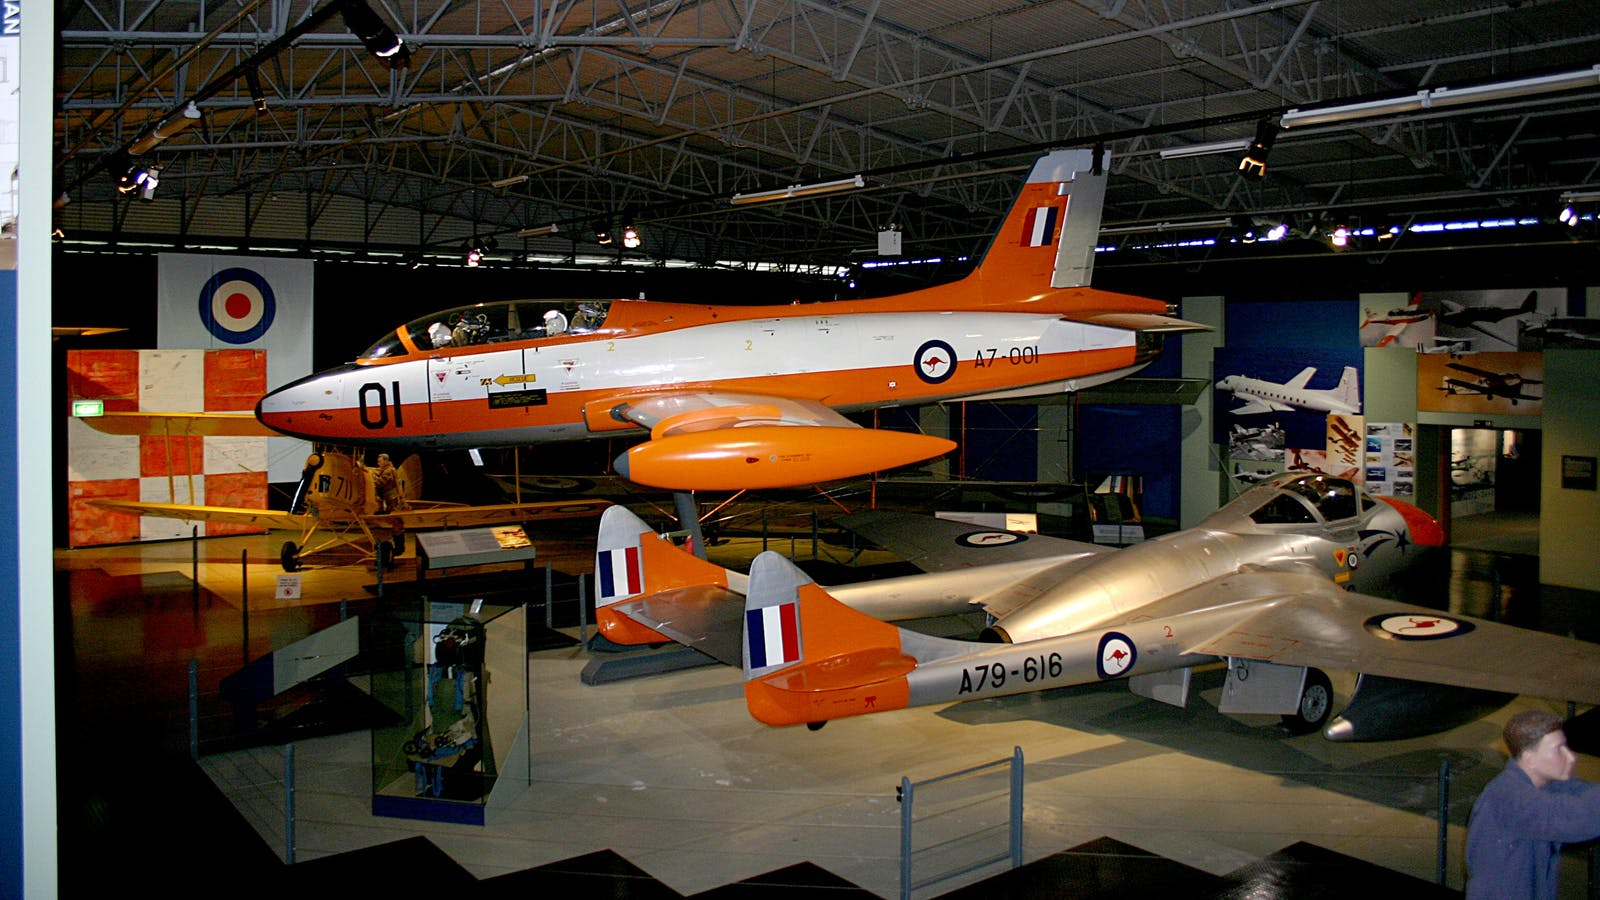 Training Hangar display - Macchi aircraft